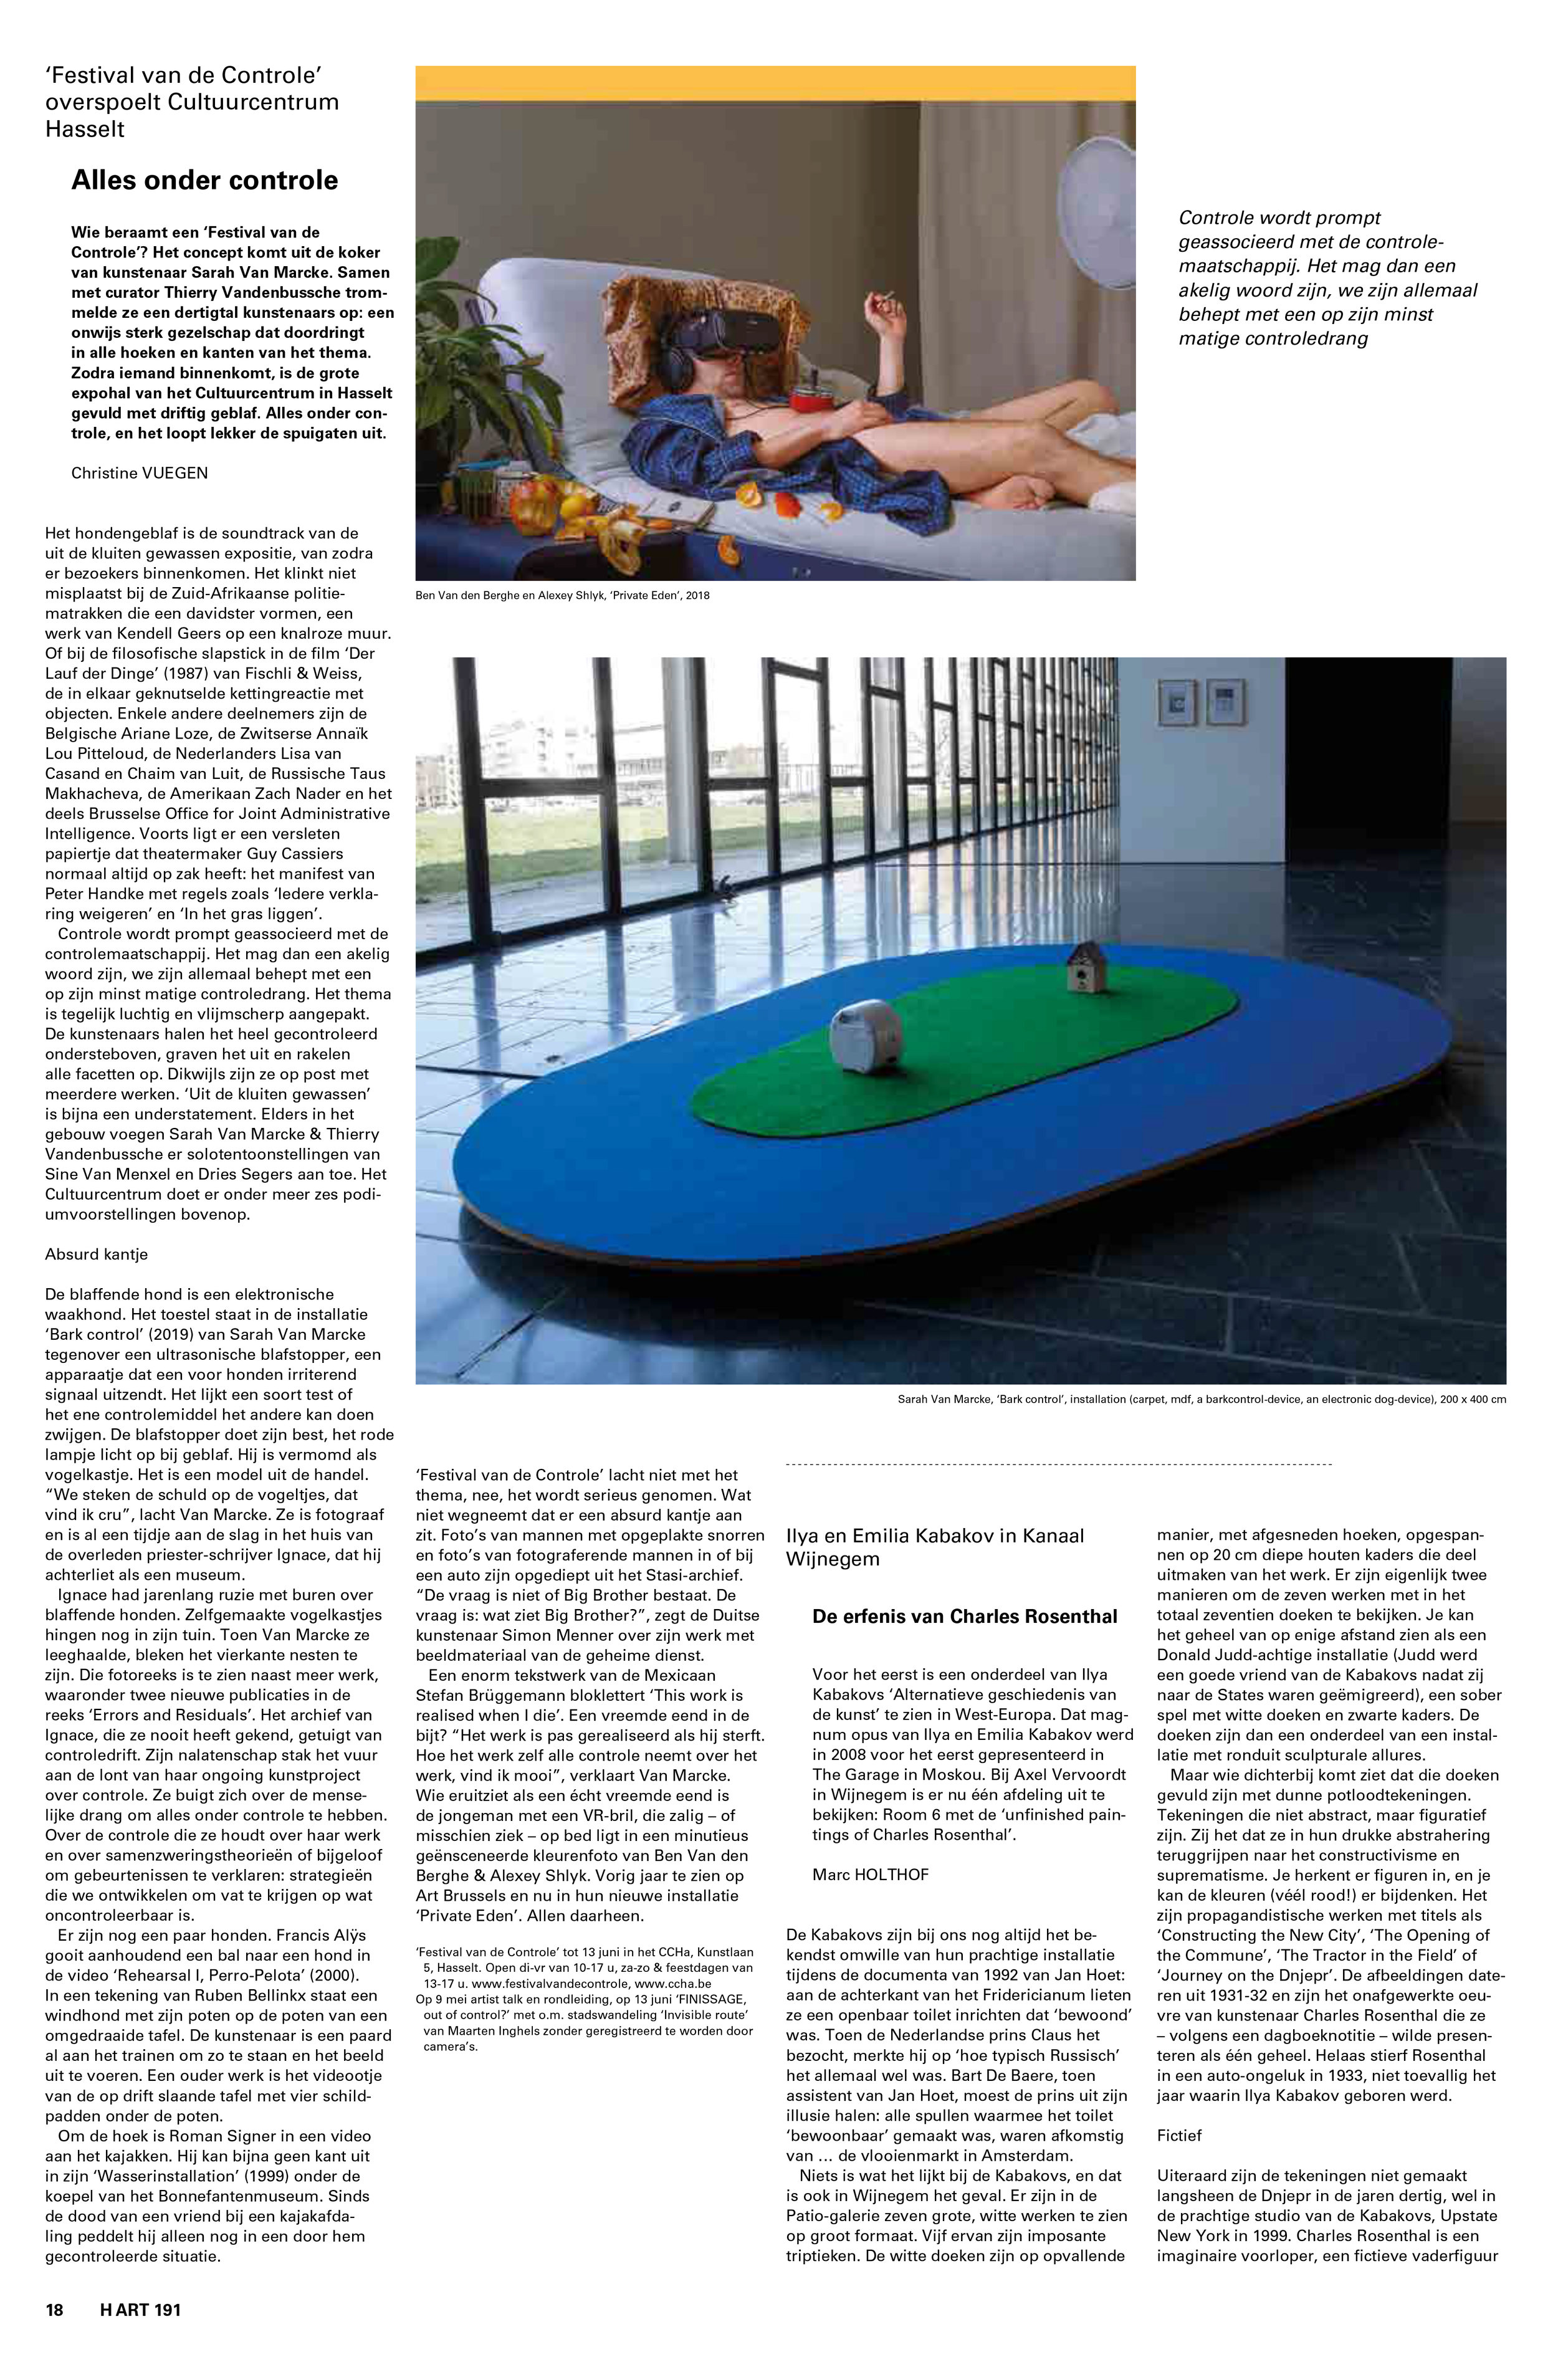 Exhibition review of 'Festival van de Controle' in H ART#191, April'19, Christine Vuegen